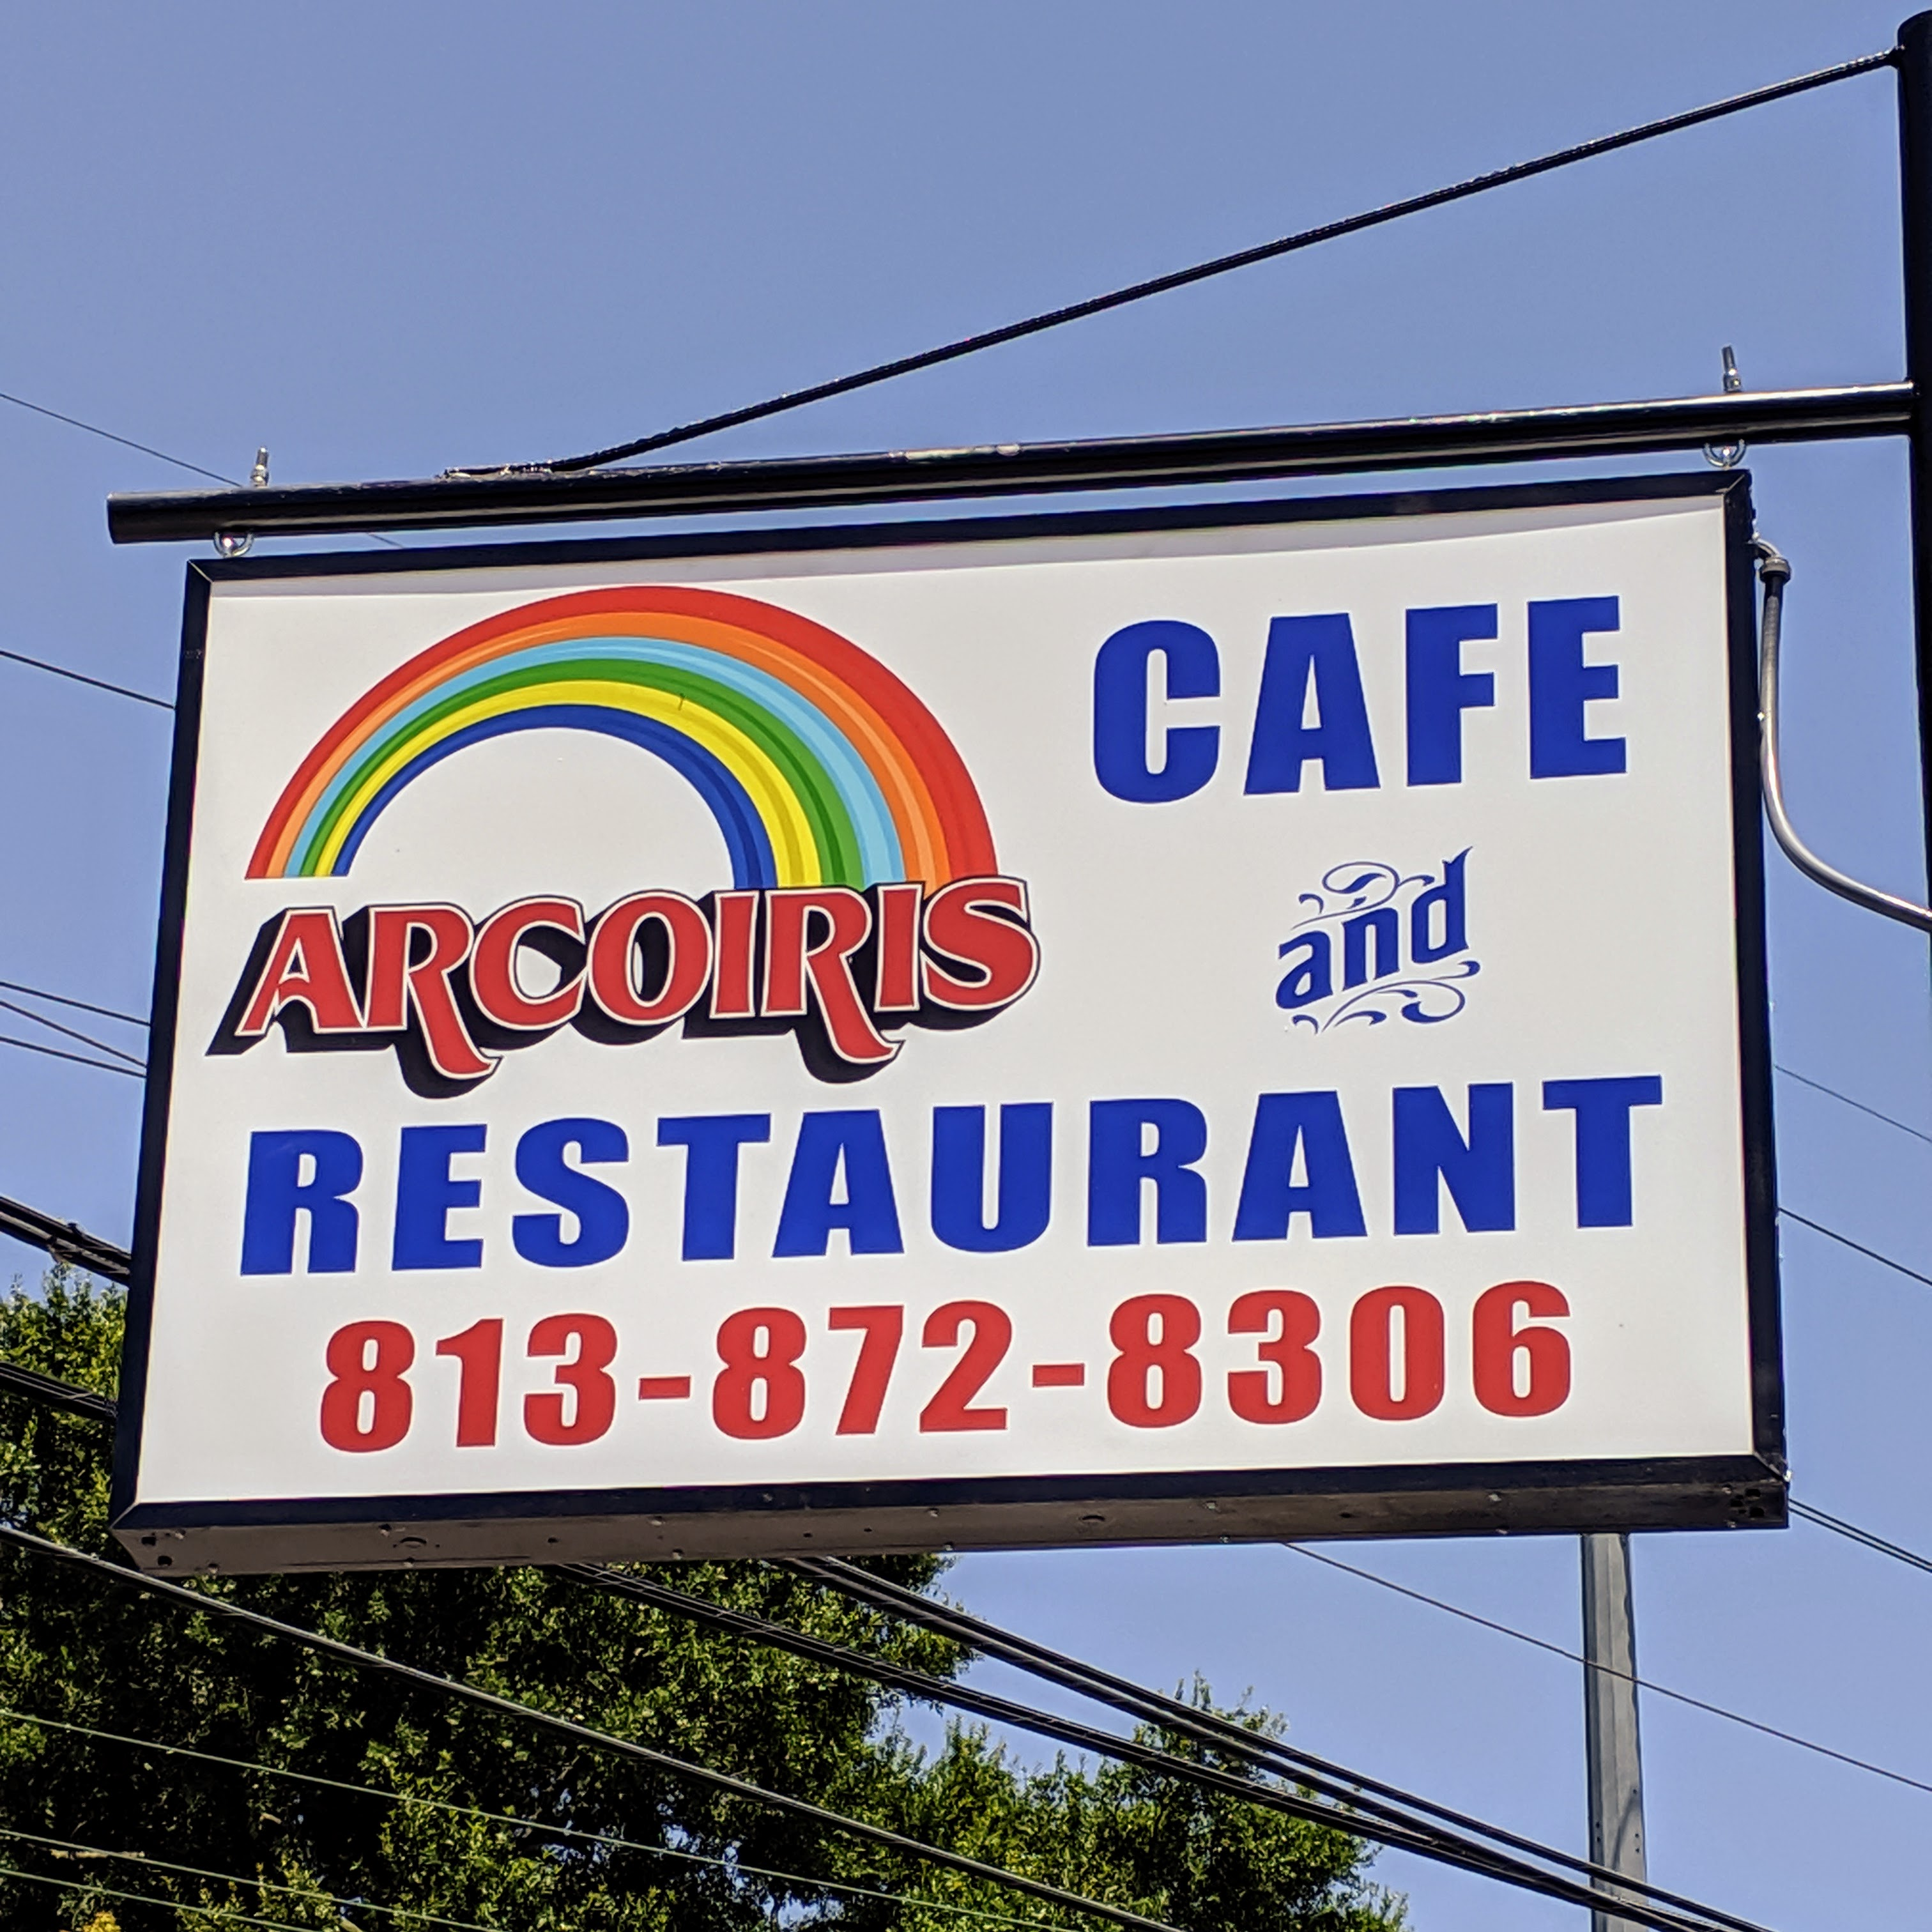 Arco Iris Cafe and Restaurant sign